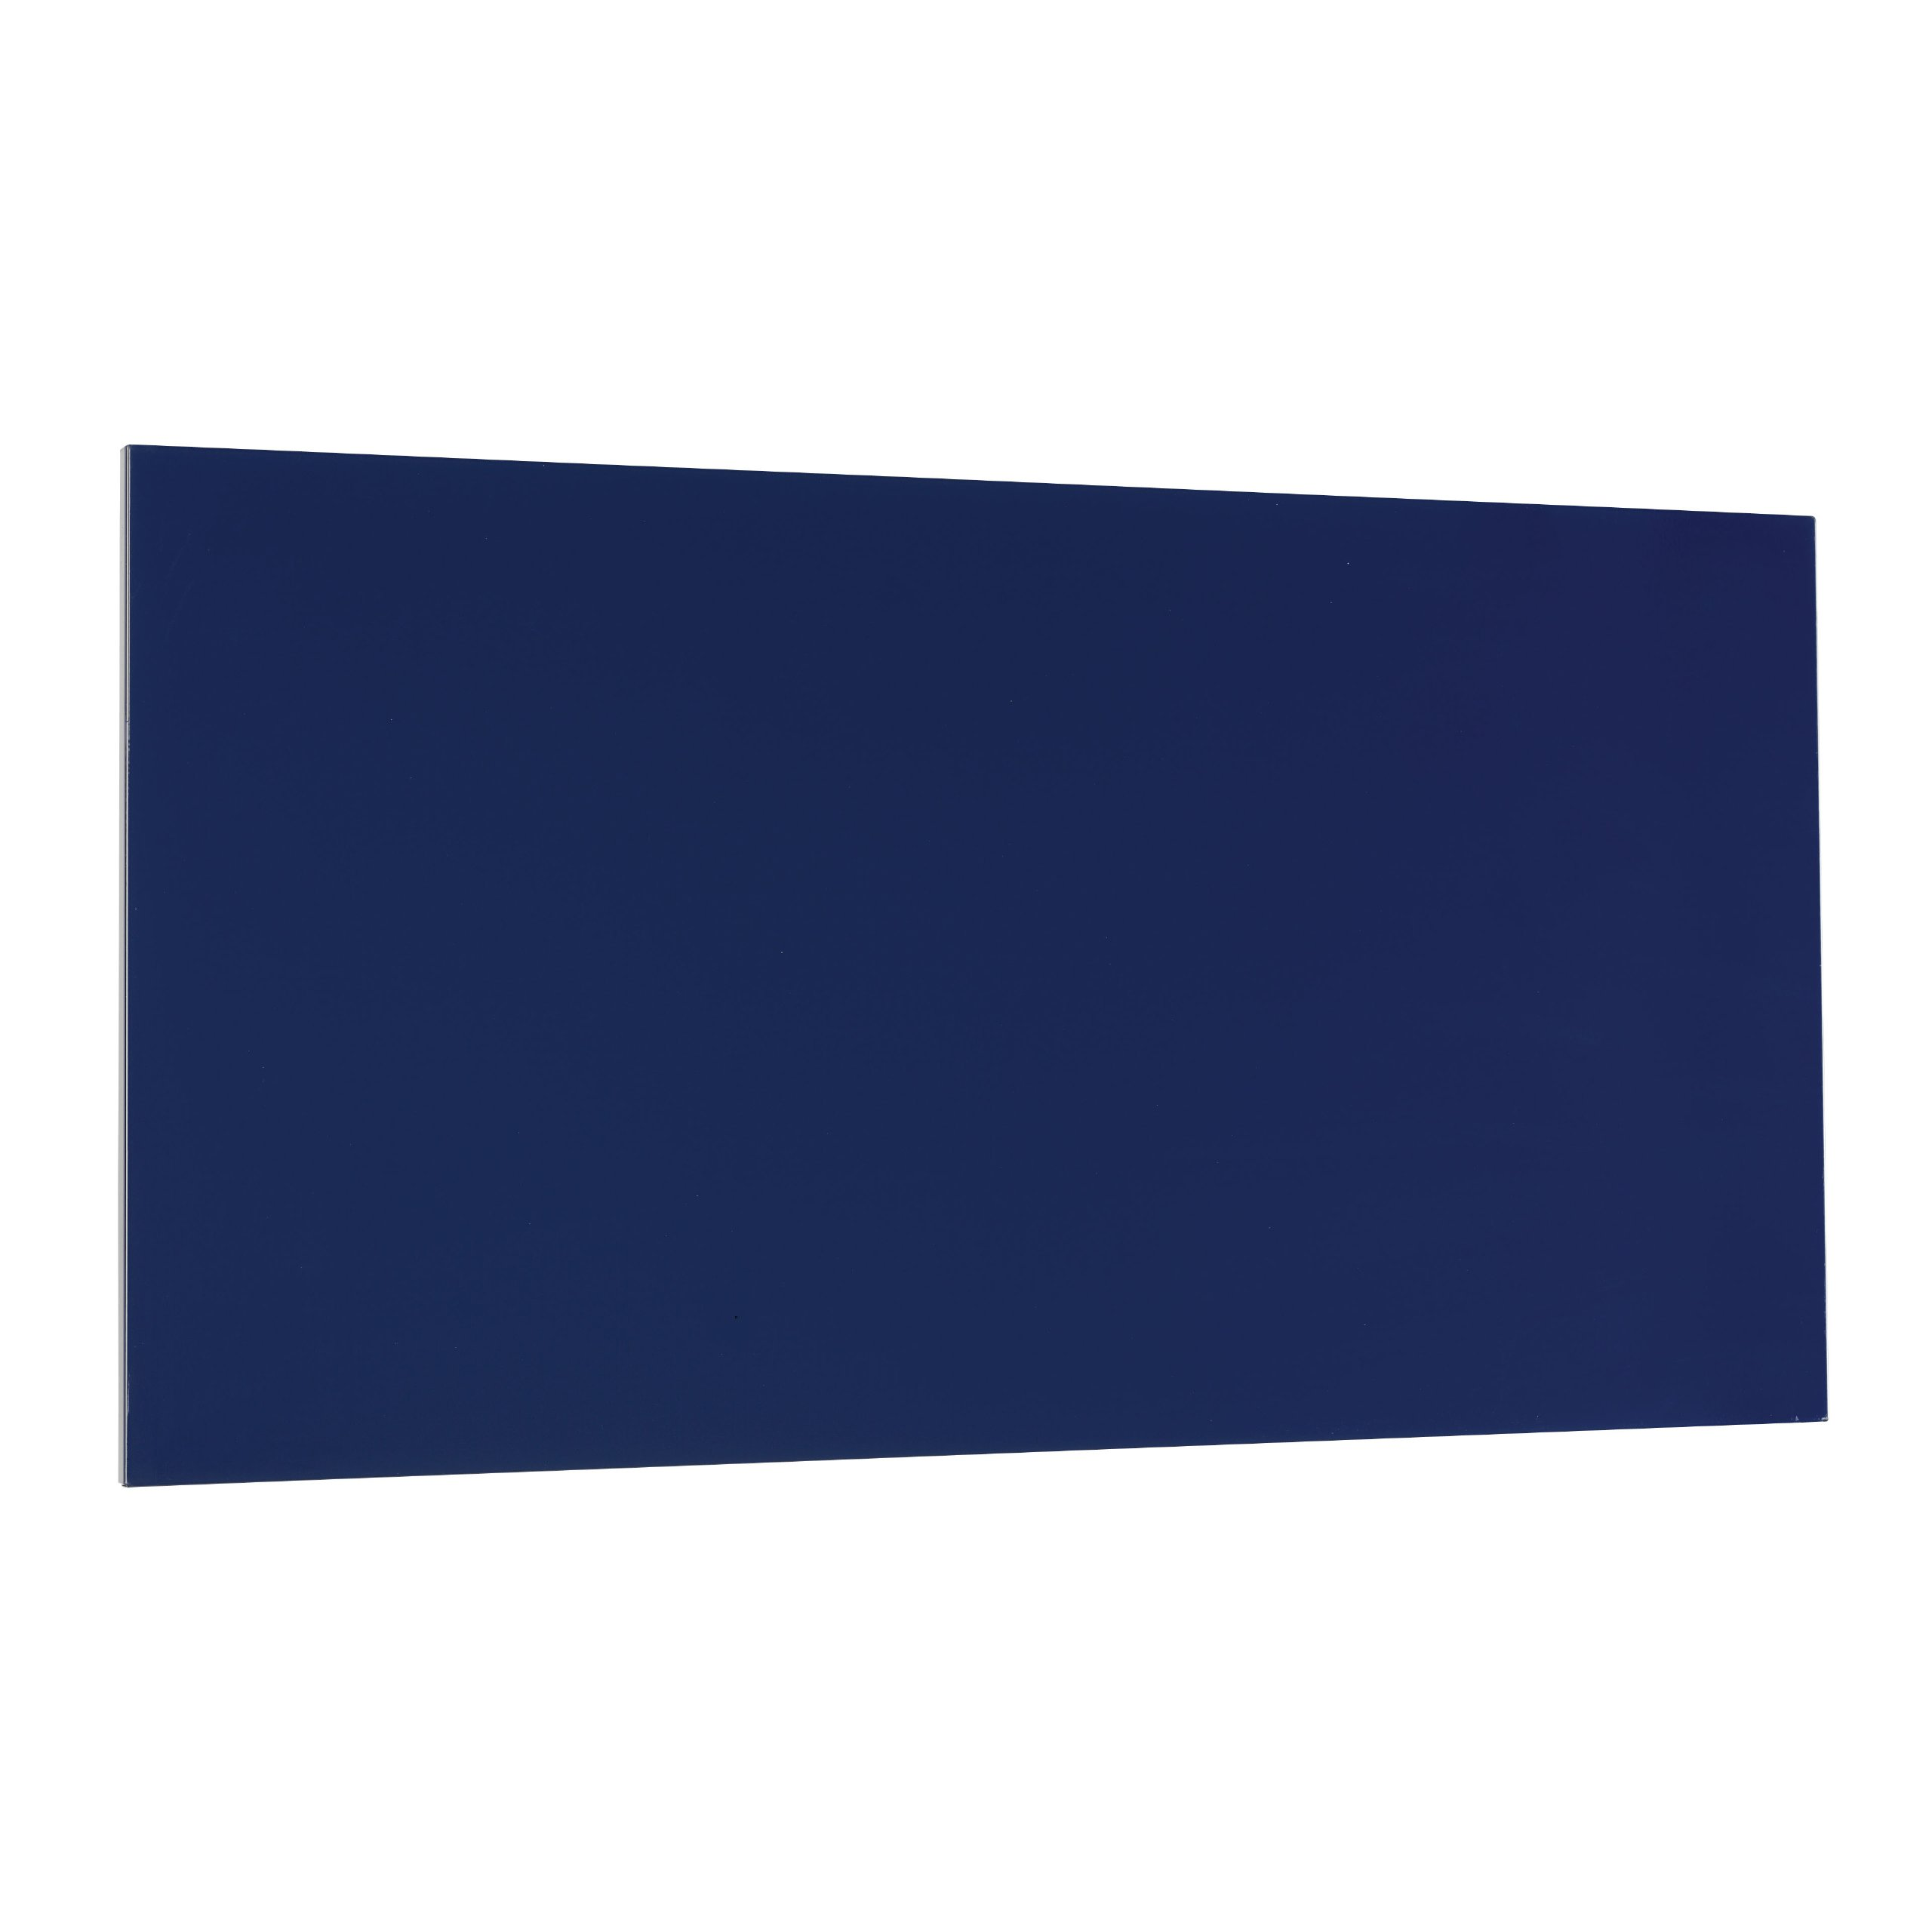 STEELMASTER Magnetic Board with Dry-Erase Pad, Pen and Magnets, 14 x 30 Inches, Blue (270163008) by MMF Industries